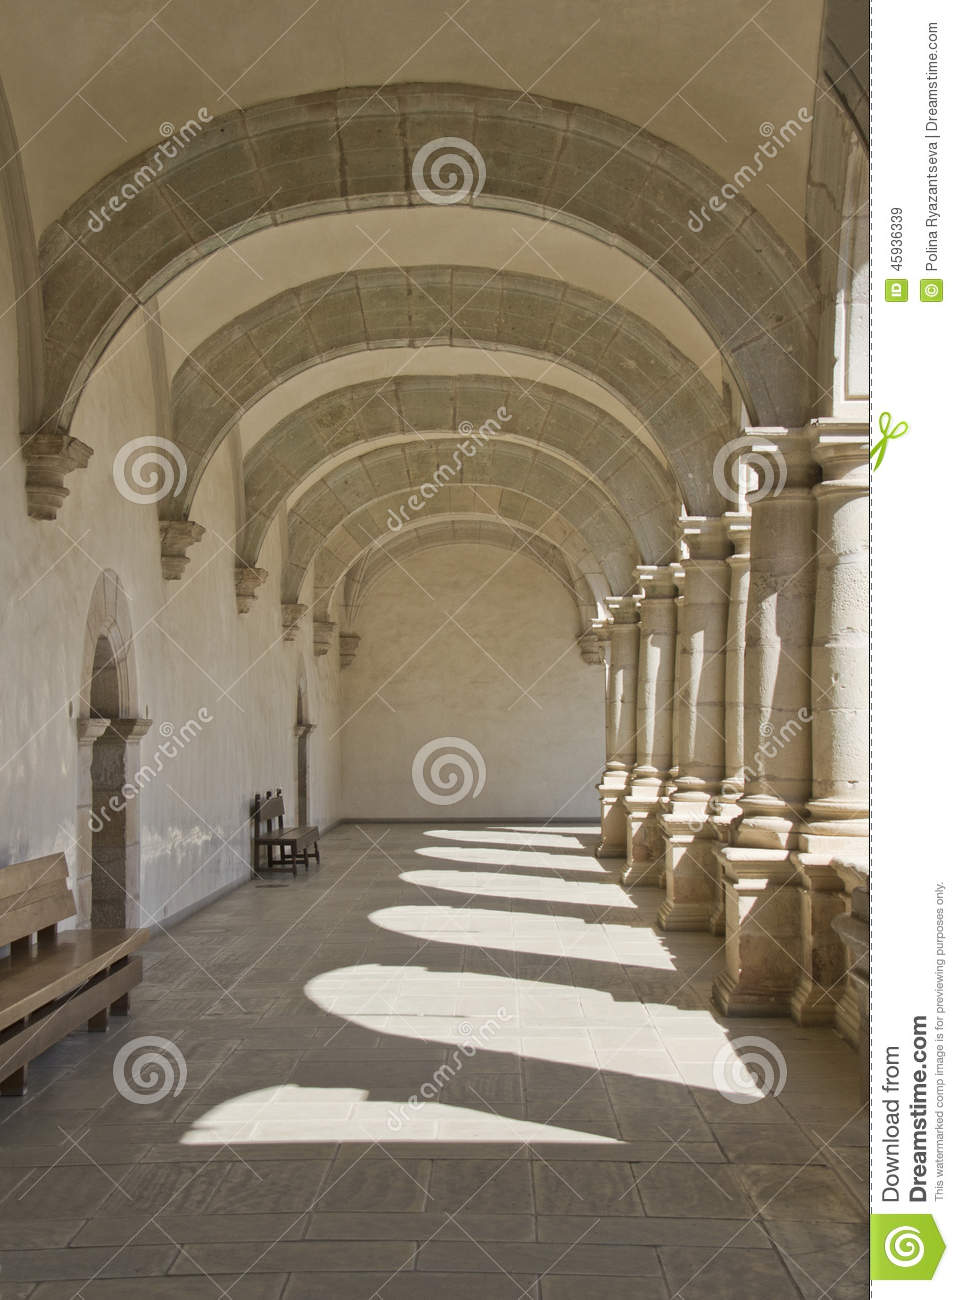 Passage With Arches And Columns